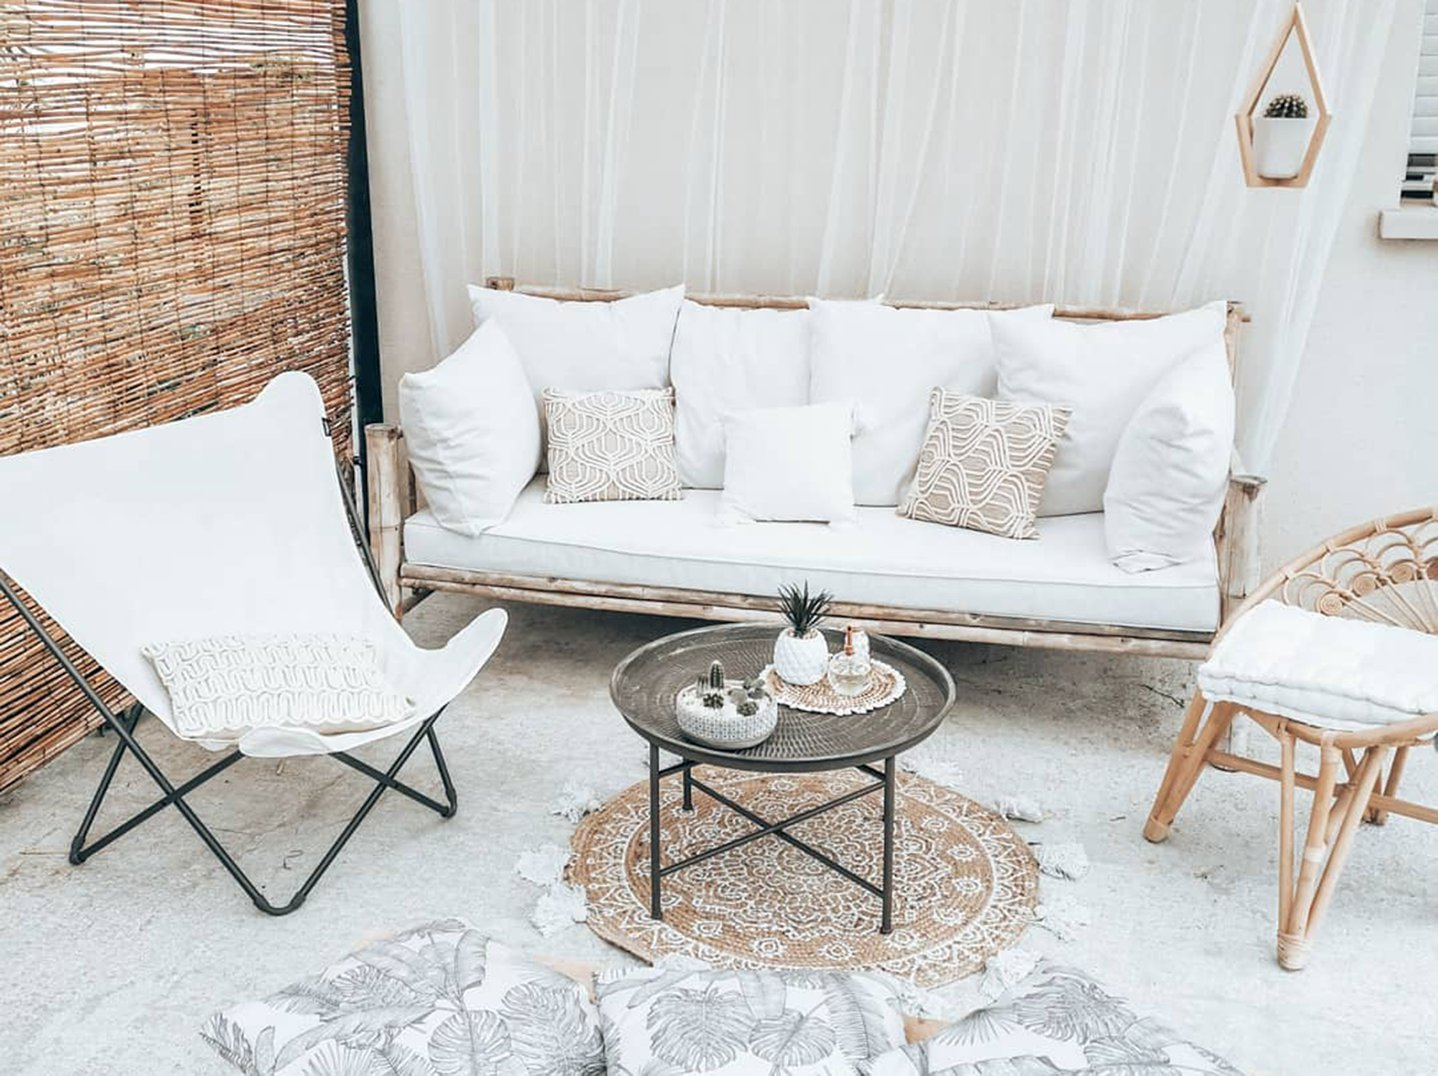 Our decor ideas for a small patio